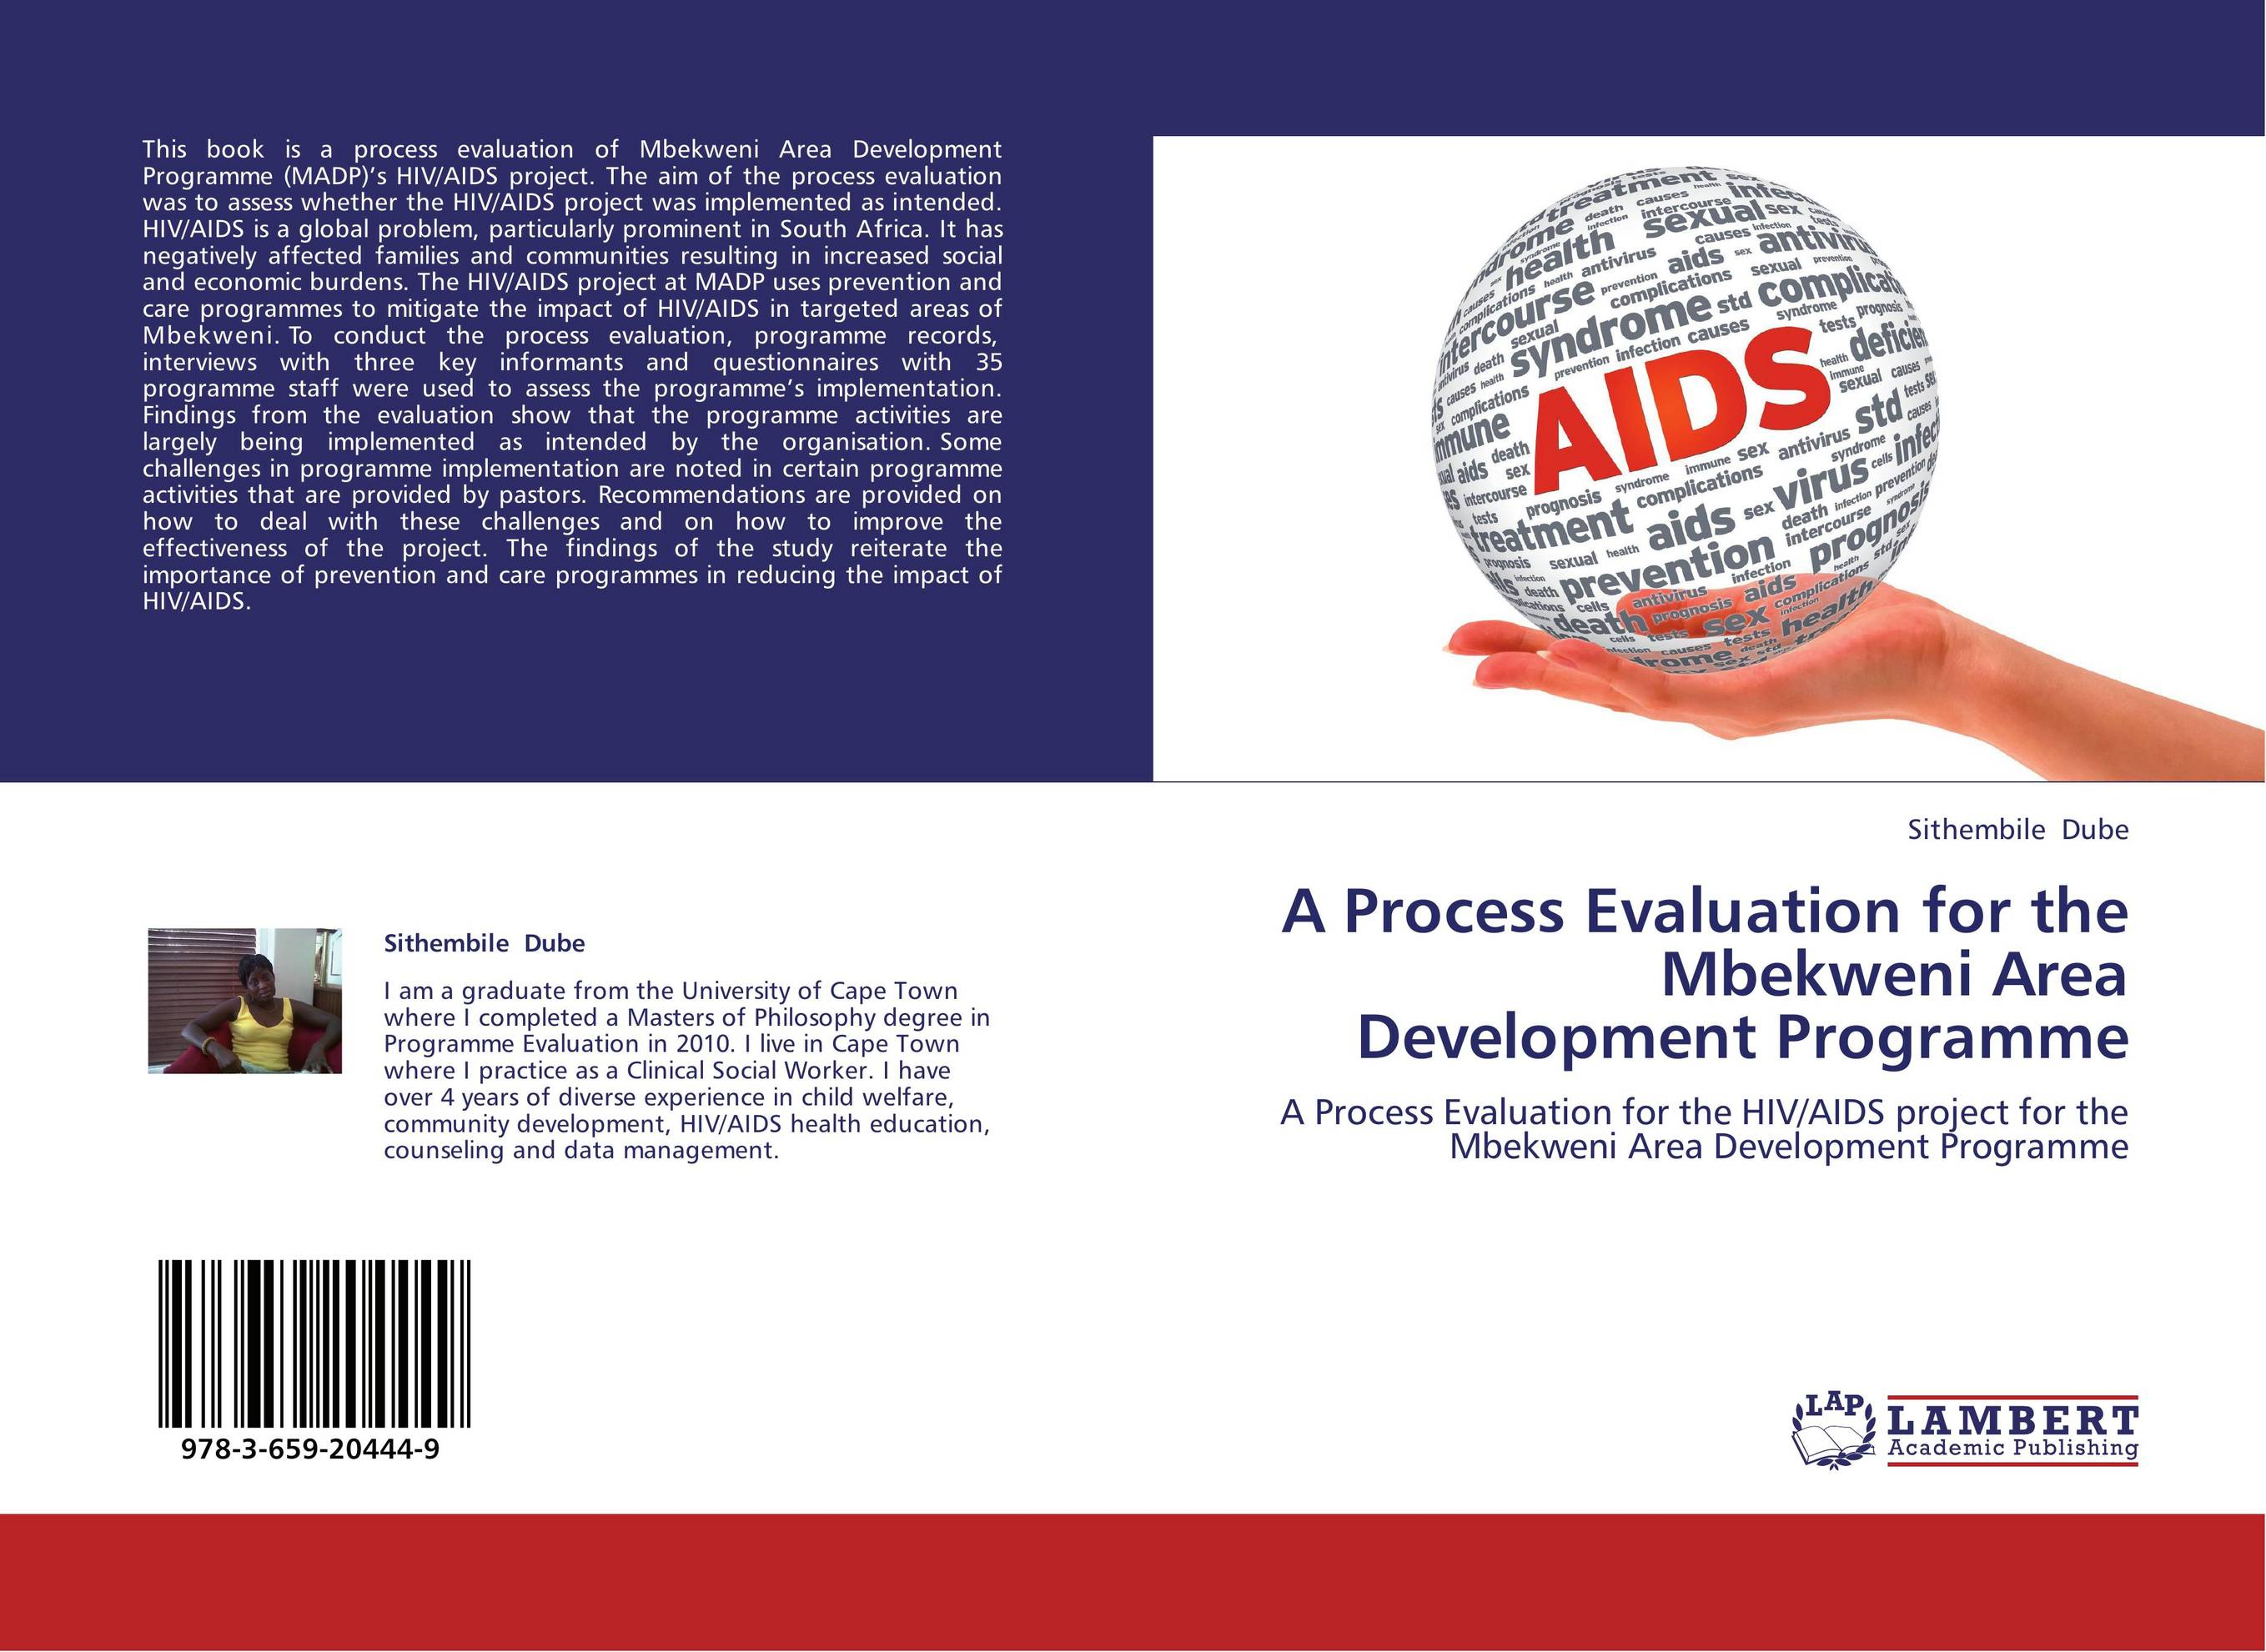 caribbean hiv aids project guyana evaluation Guyana november 2005 hiv/aids in the caribbean region: a multi-organization review final report • the difficulties in developing an effective monitoring and evaluation system, • the barriers to an 6 the caribbean hiv/aids program review will review progress of the individual projects and.